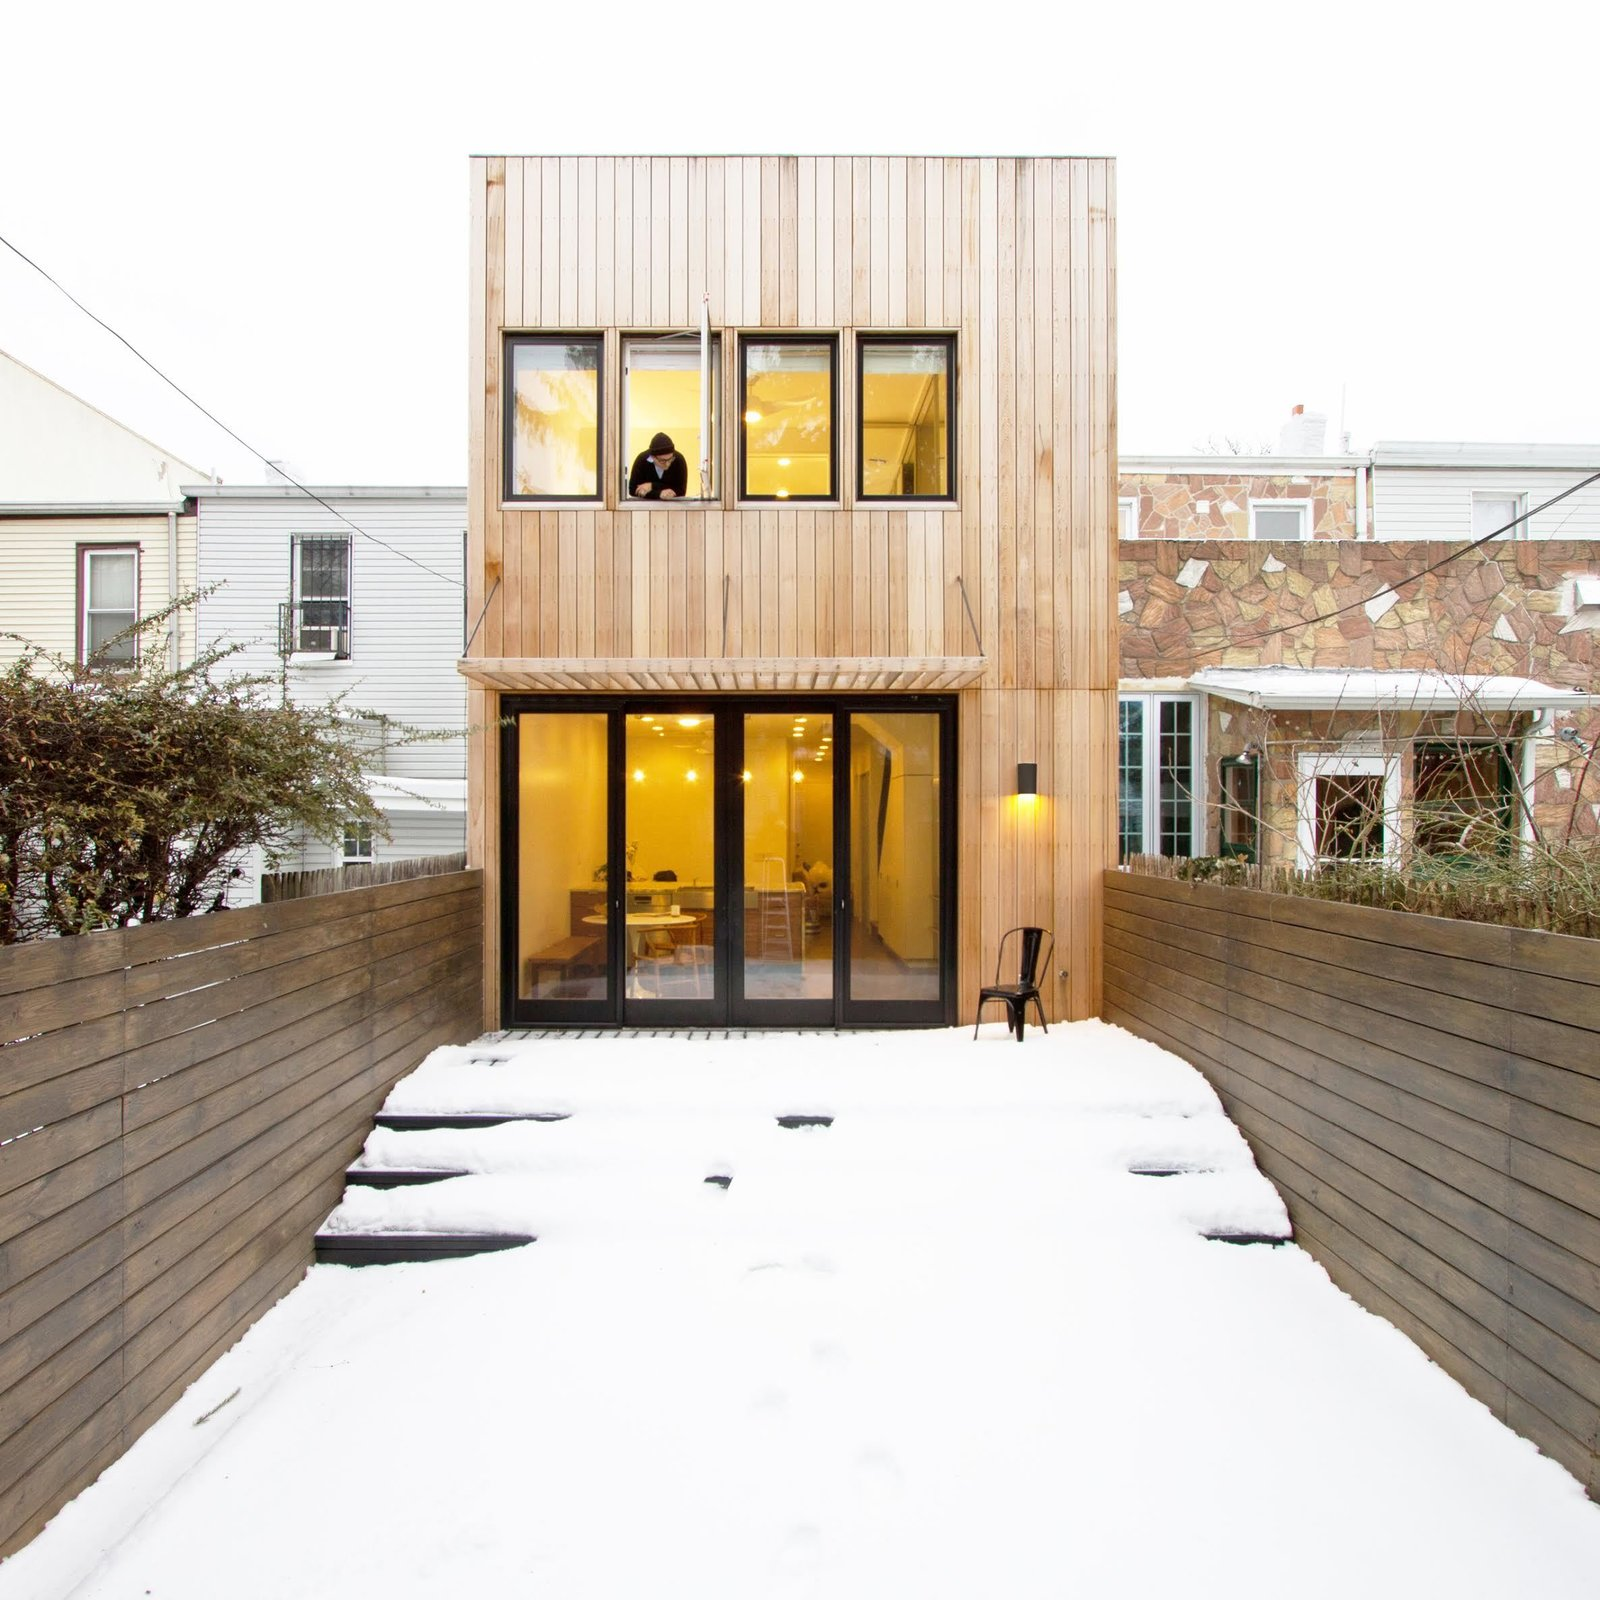 """Aniket Shahane of OA muses, """"...the building becomes much more an active participant in the lifecycle of its inhabitants, encouraging them to stay longer, maintain their property, and contribute to a culture that is truly sustainable.""""  New York City Row House Renovations We Love by Zachary Edelson"""